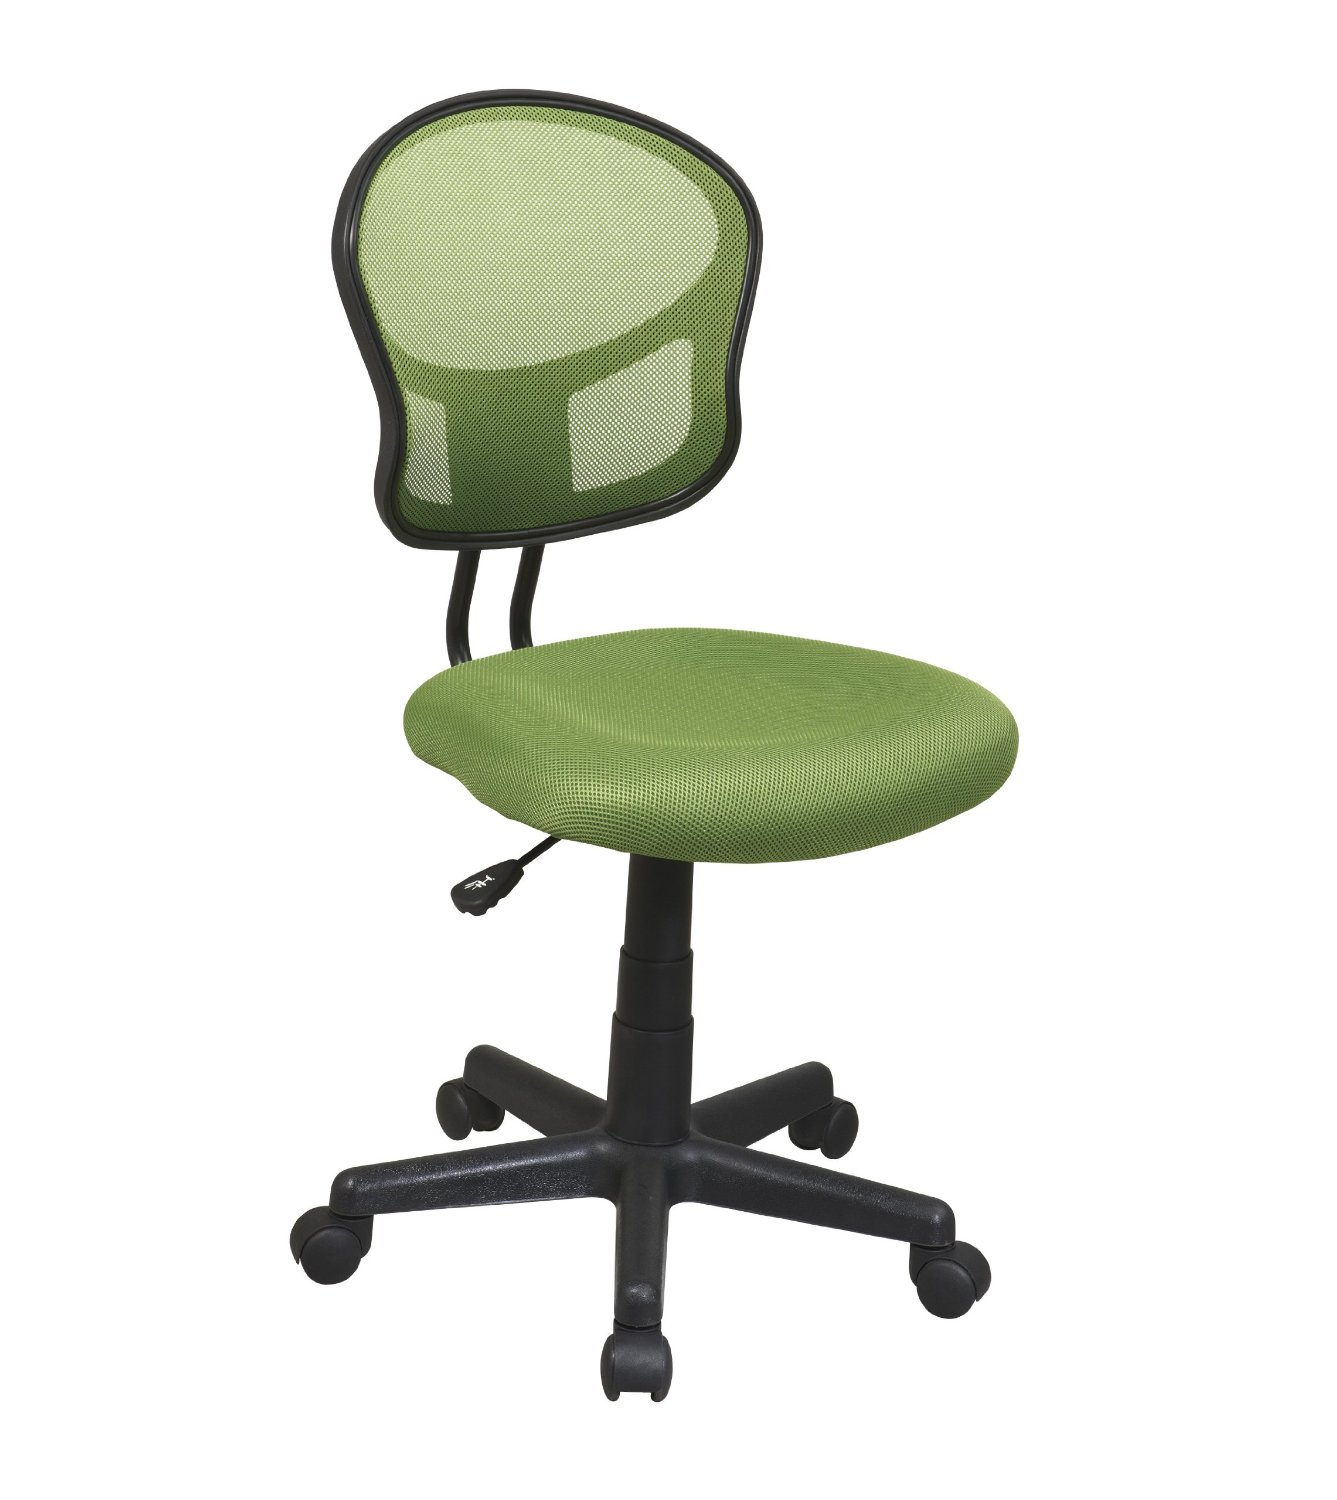 chair for office healthy kitchen bar chairs uk best budget your and comfy